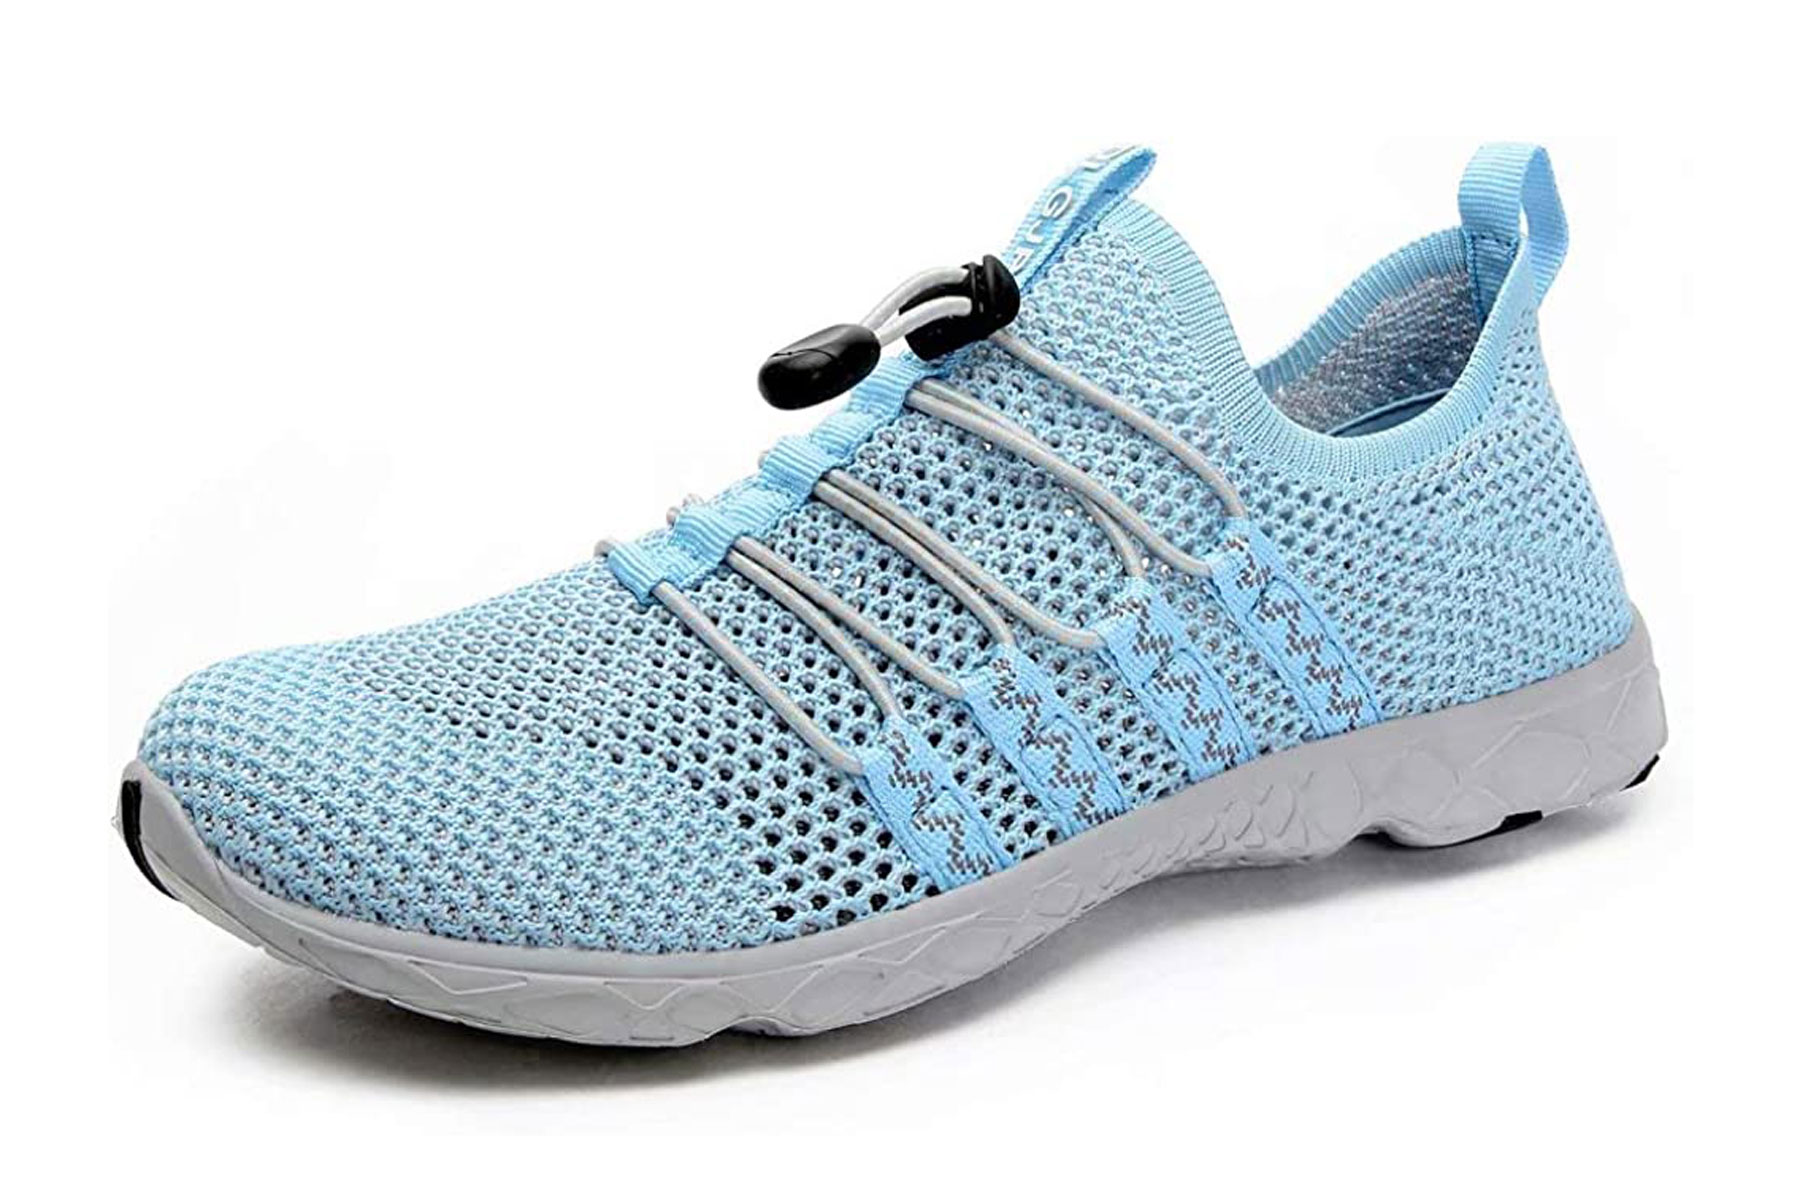 The Best Water Shoes for Women in 2020 | Travel + Leisure